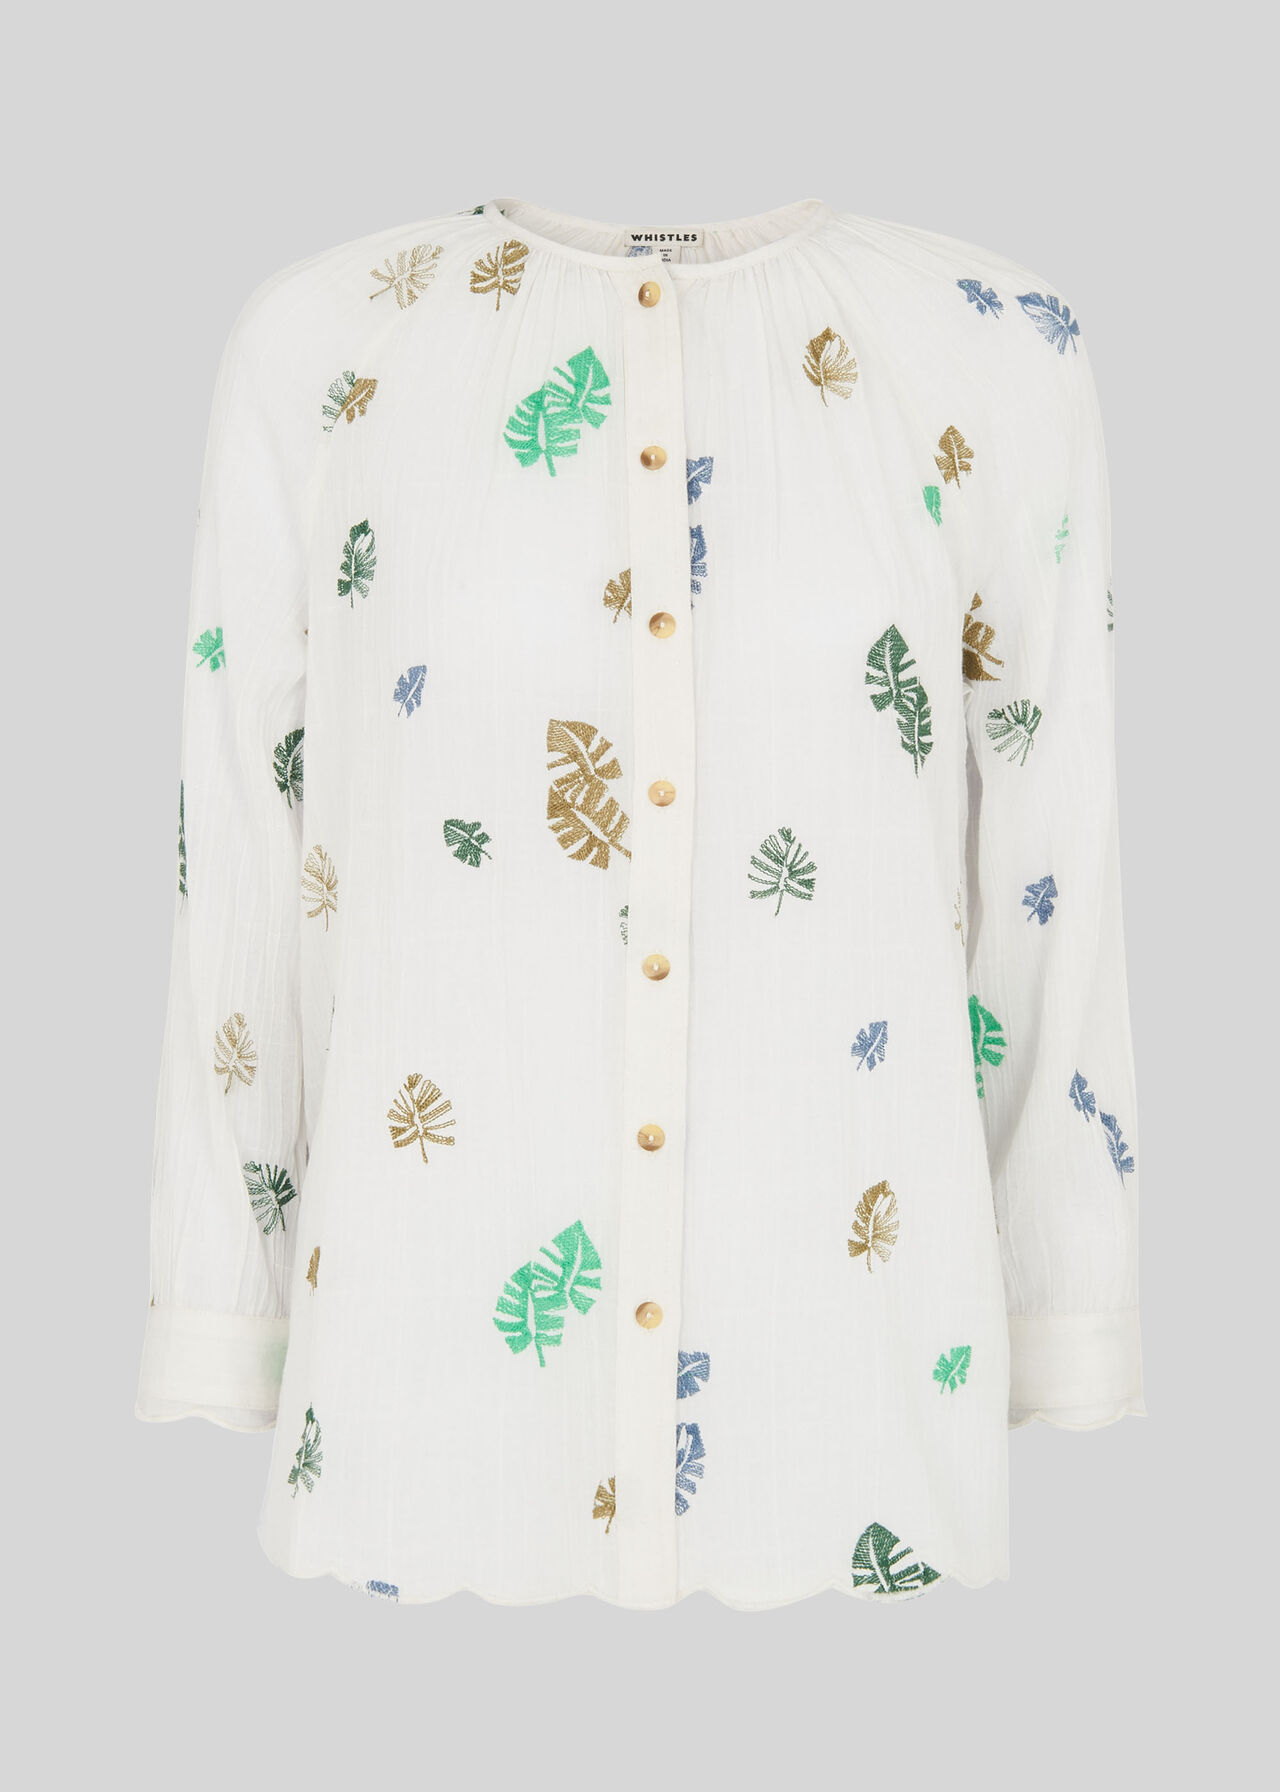 Cheeseplant Embroidered Shirt White/Multi